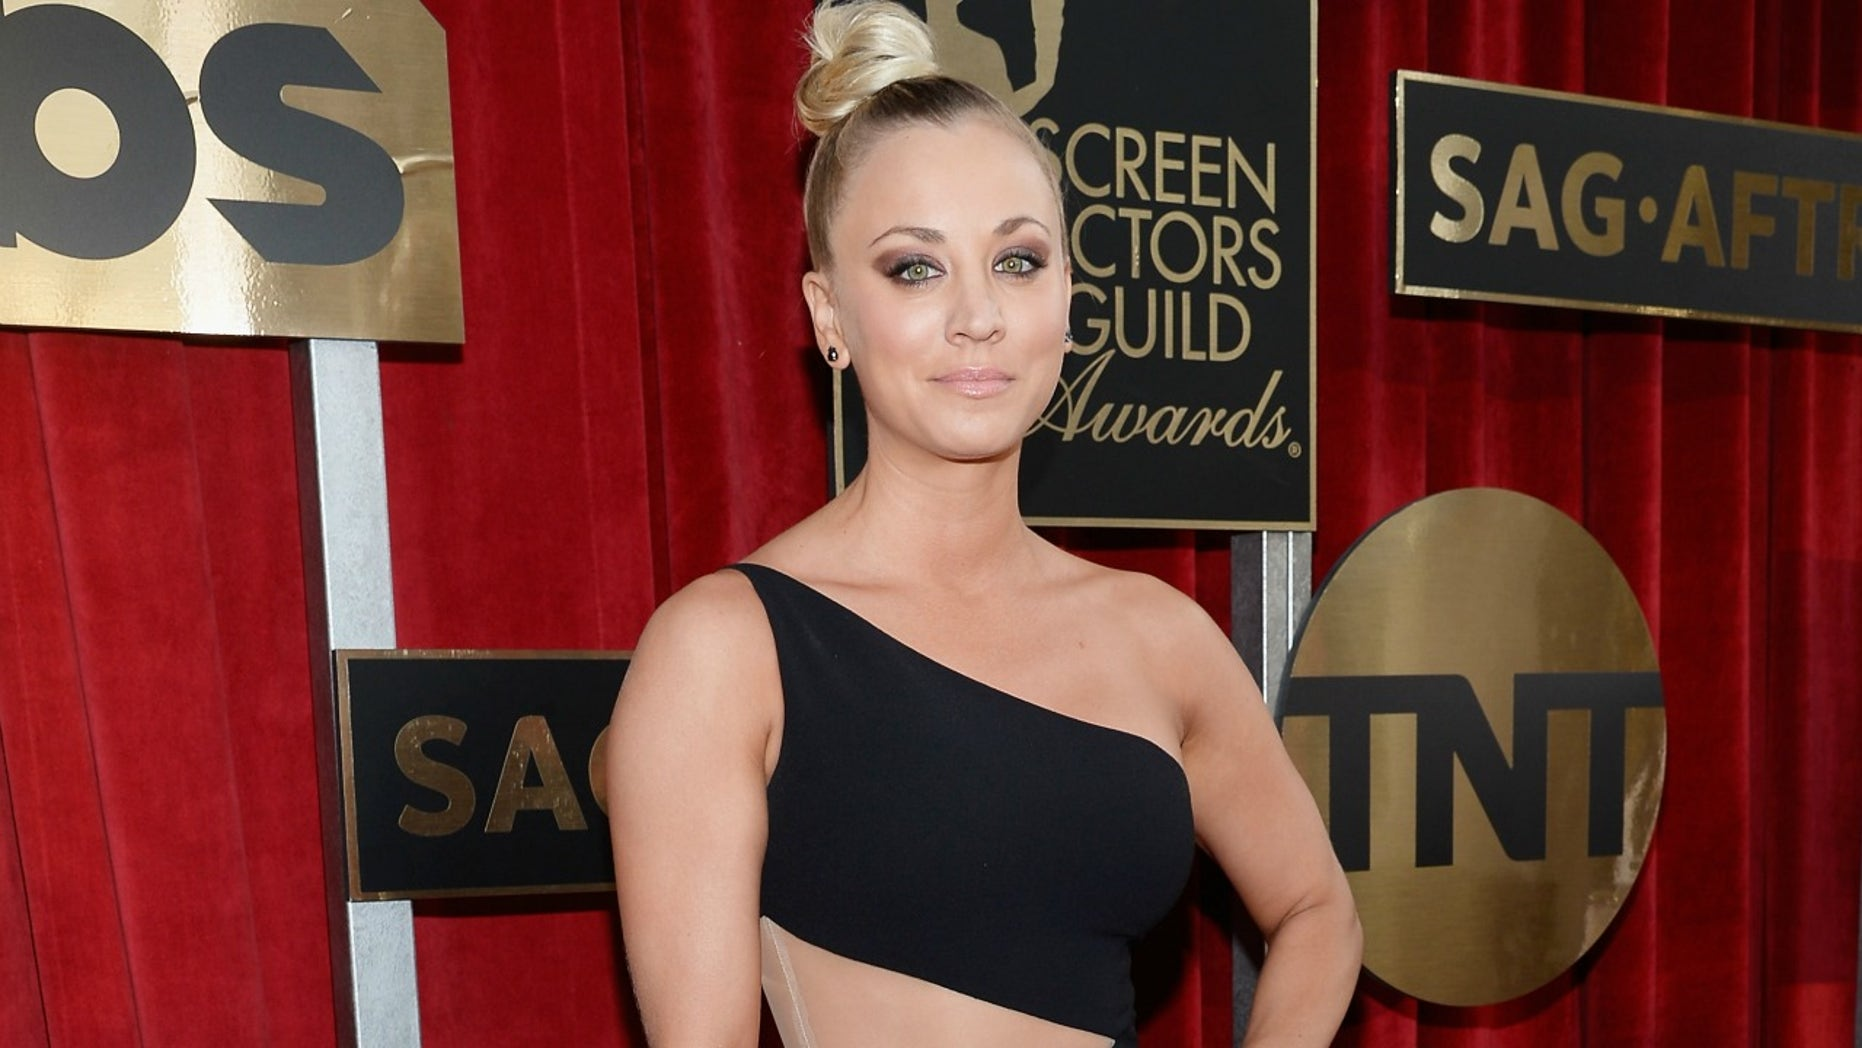 LOS ANGELES, CA - JANUARY 30:  Actress Kaley Cuoco attends the 22nd Annual Screen Actors Guild Awards at The Shrine Auditorium on January 30, 2016 in Los Angeles, California.  (Photo by Kevork Djansezian/Getty Images)